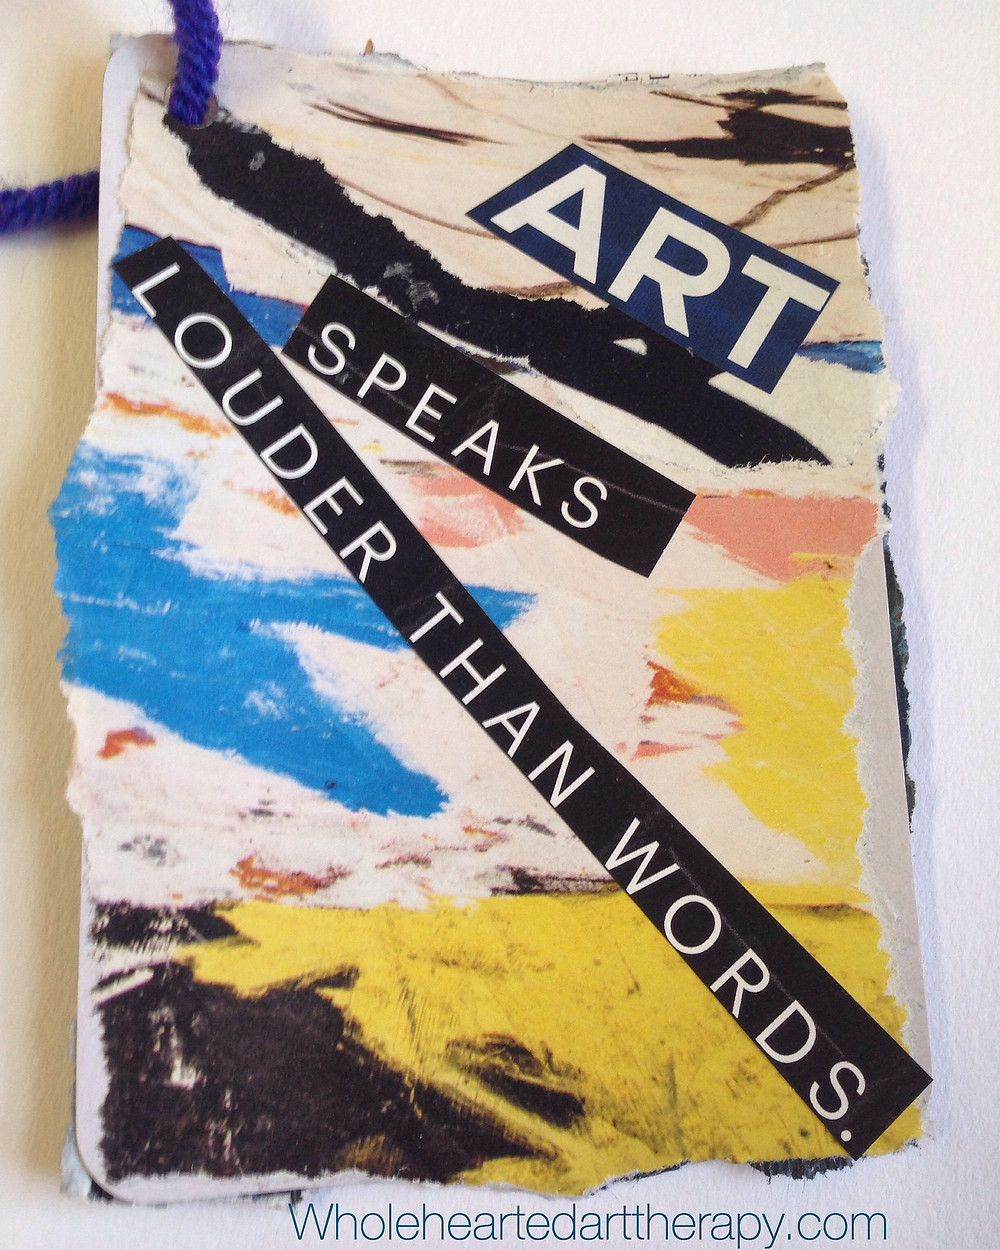 Arta Cakaj MS LCAT, Wholehearted Creative Arts Therapy, Art therapy in Westchester,